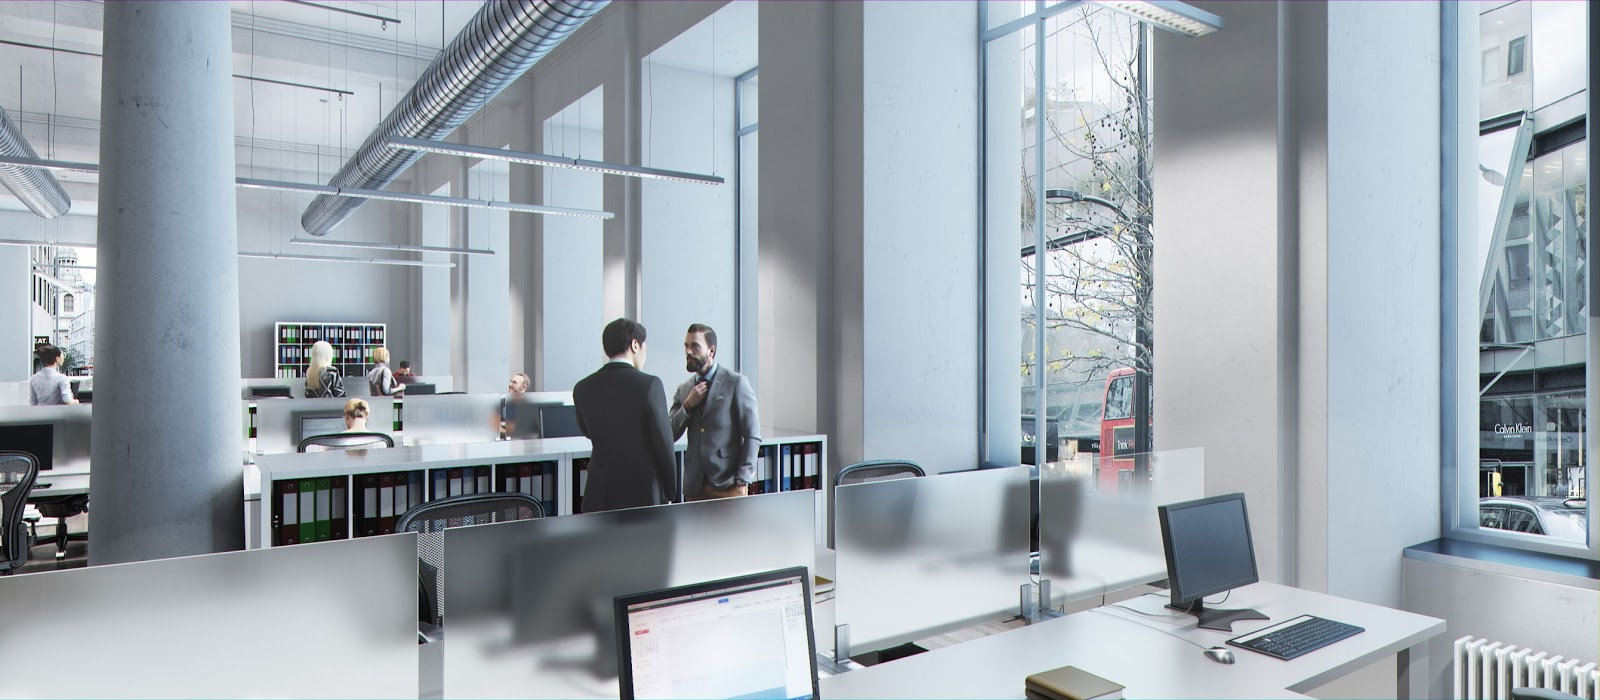 3ds max 3d data visualisation 3d images vray mental for Office einrichtung